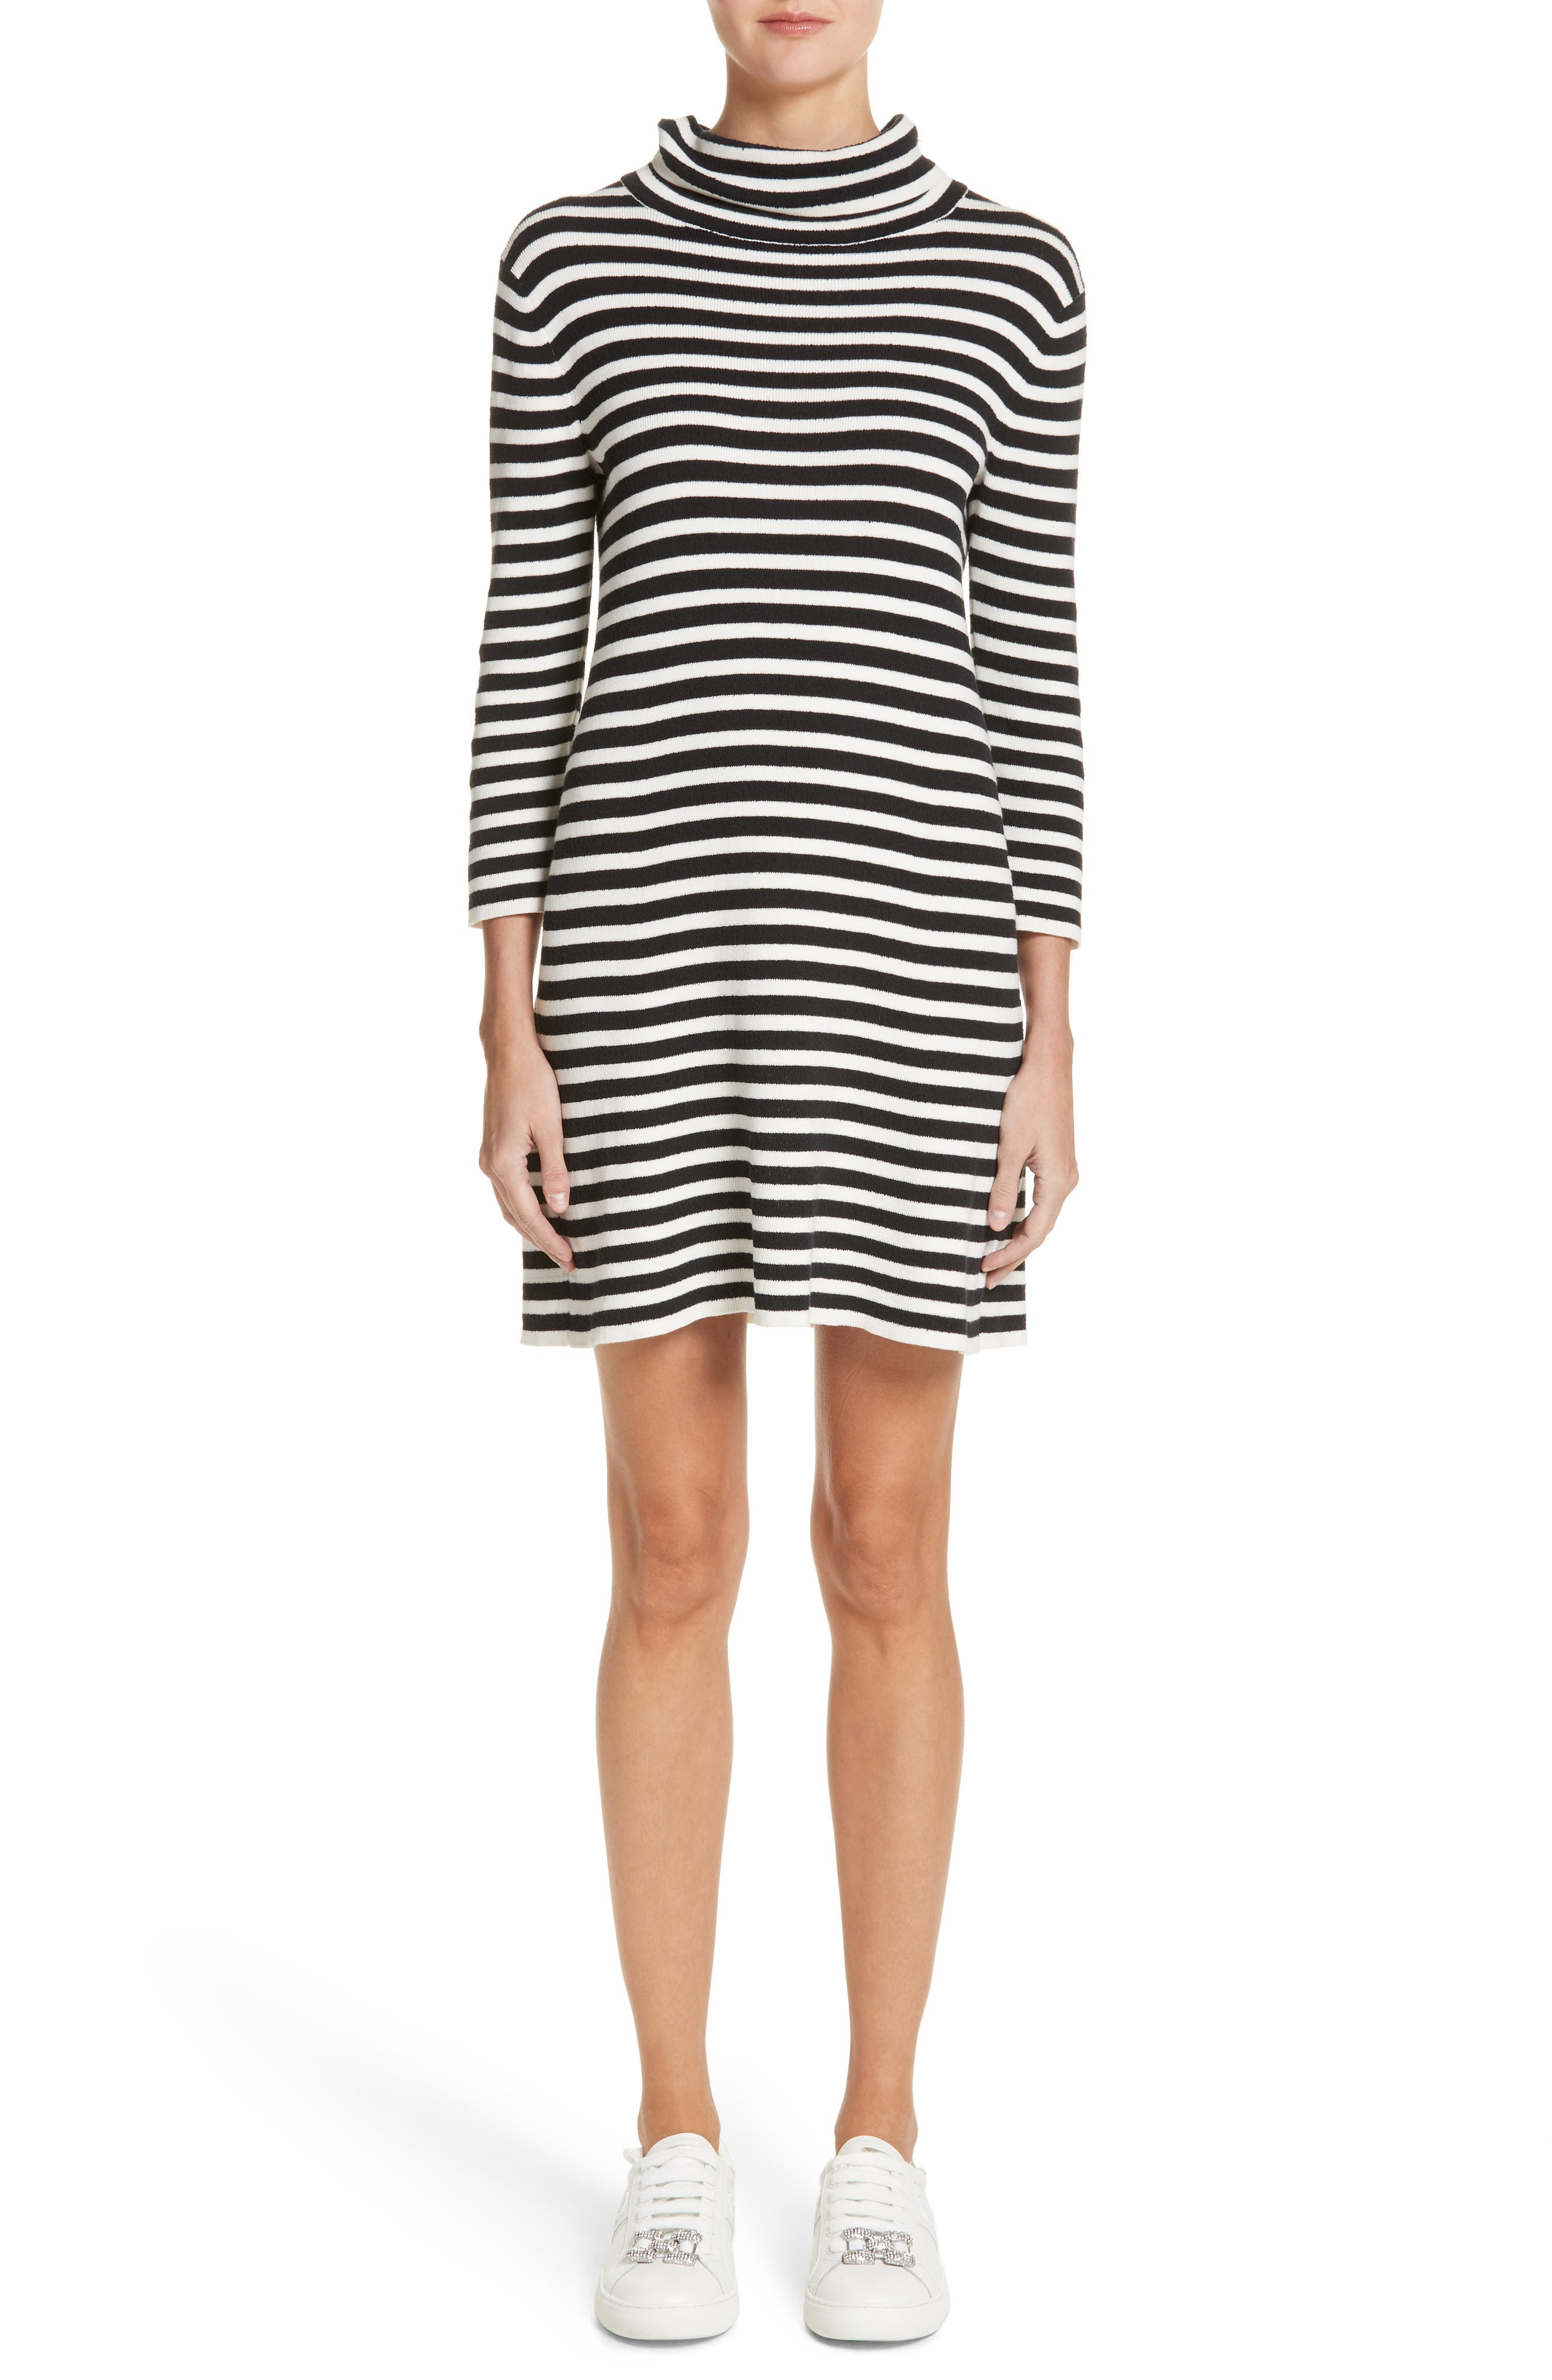 Stripe Cowl Neck Dress,                             Main thumbnail 1, color,                             Black/ Ivory